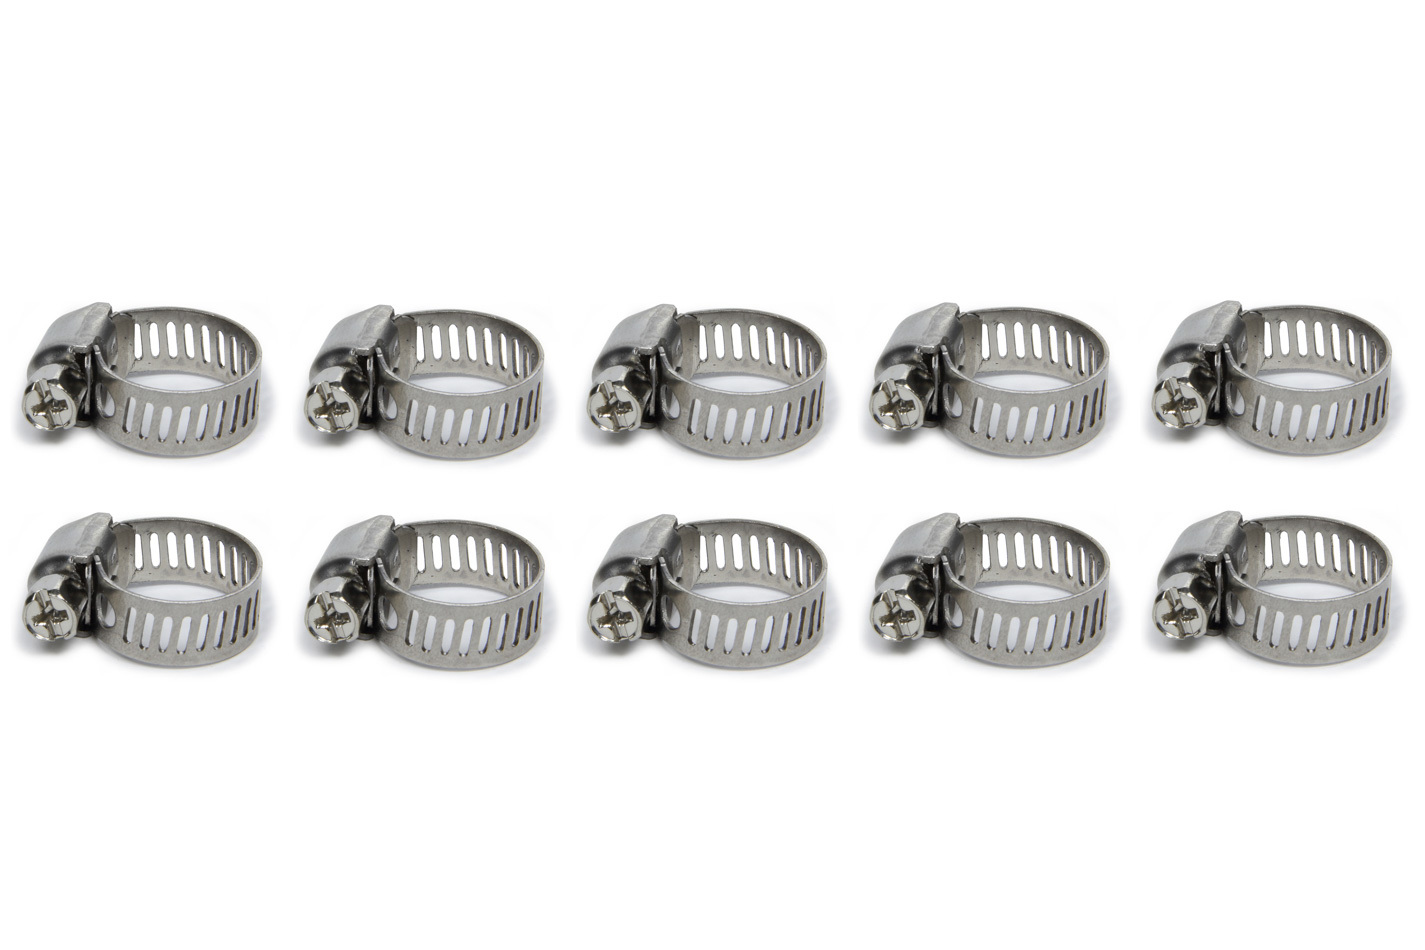 Vibrant Performance S.S. Worm Gear Clamps .44in to .90in 10 Pack